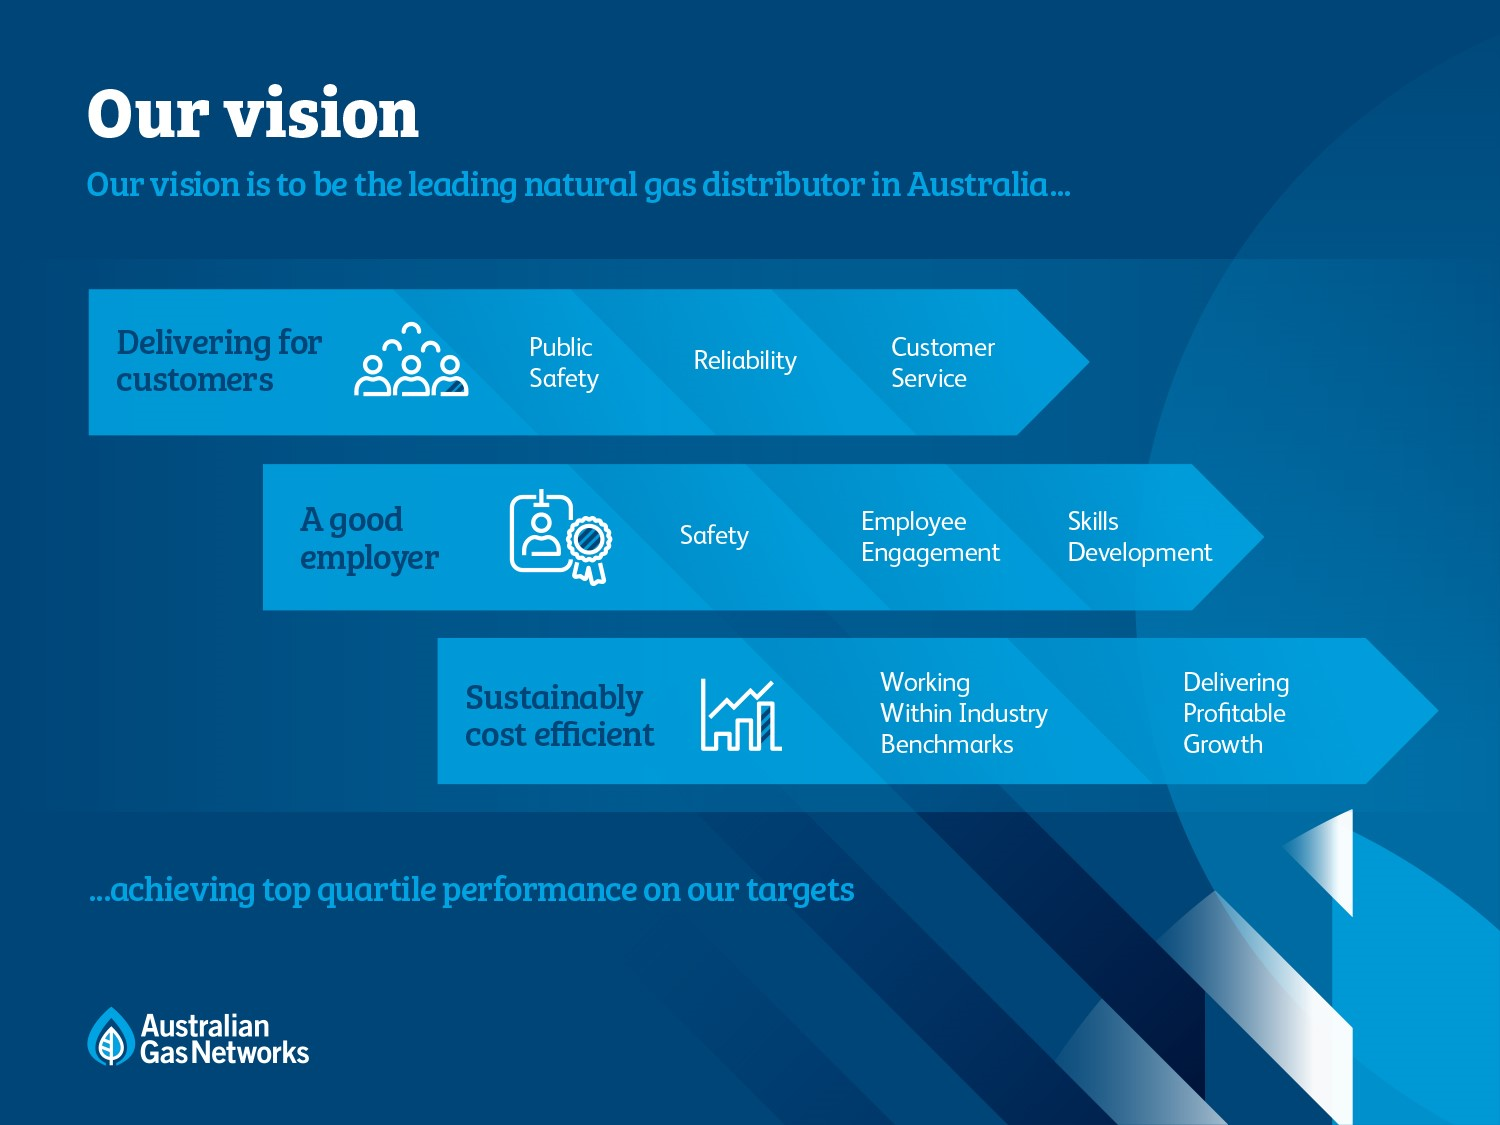 Our vision is to be the leading natural gas distributor in Australia